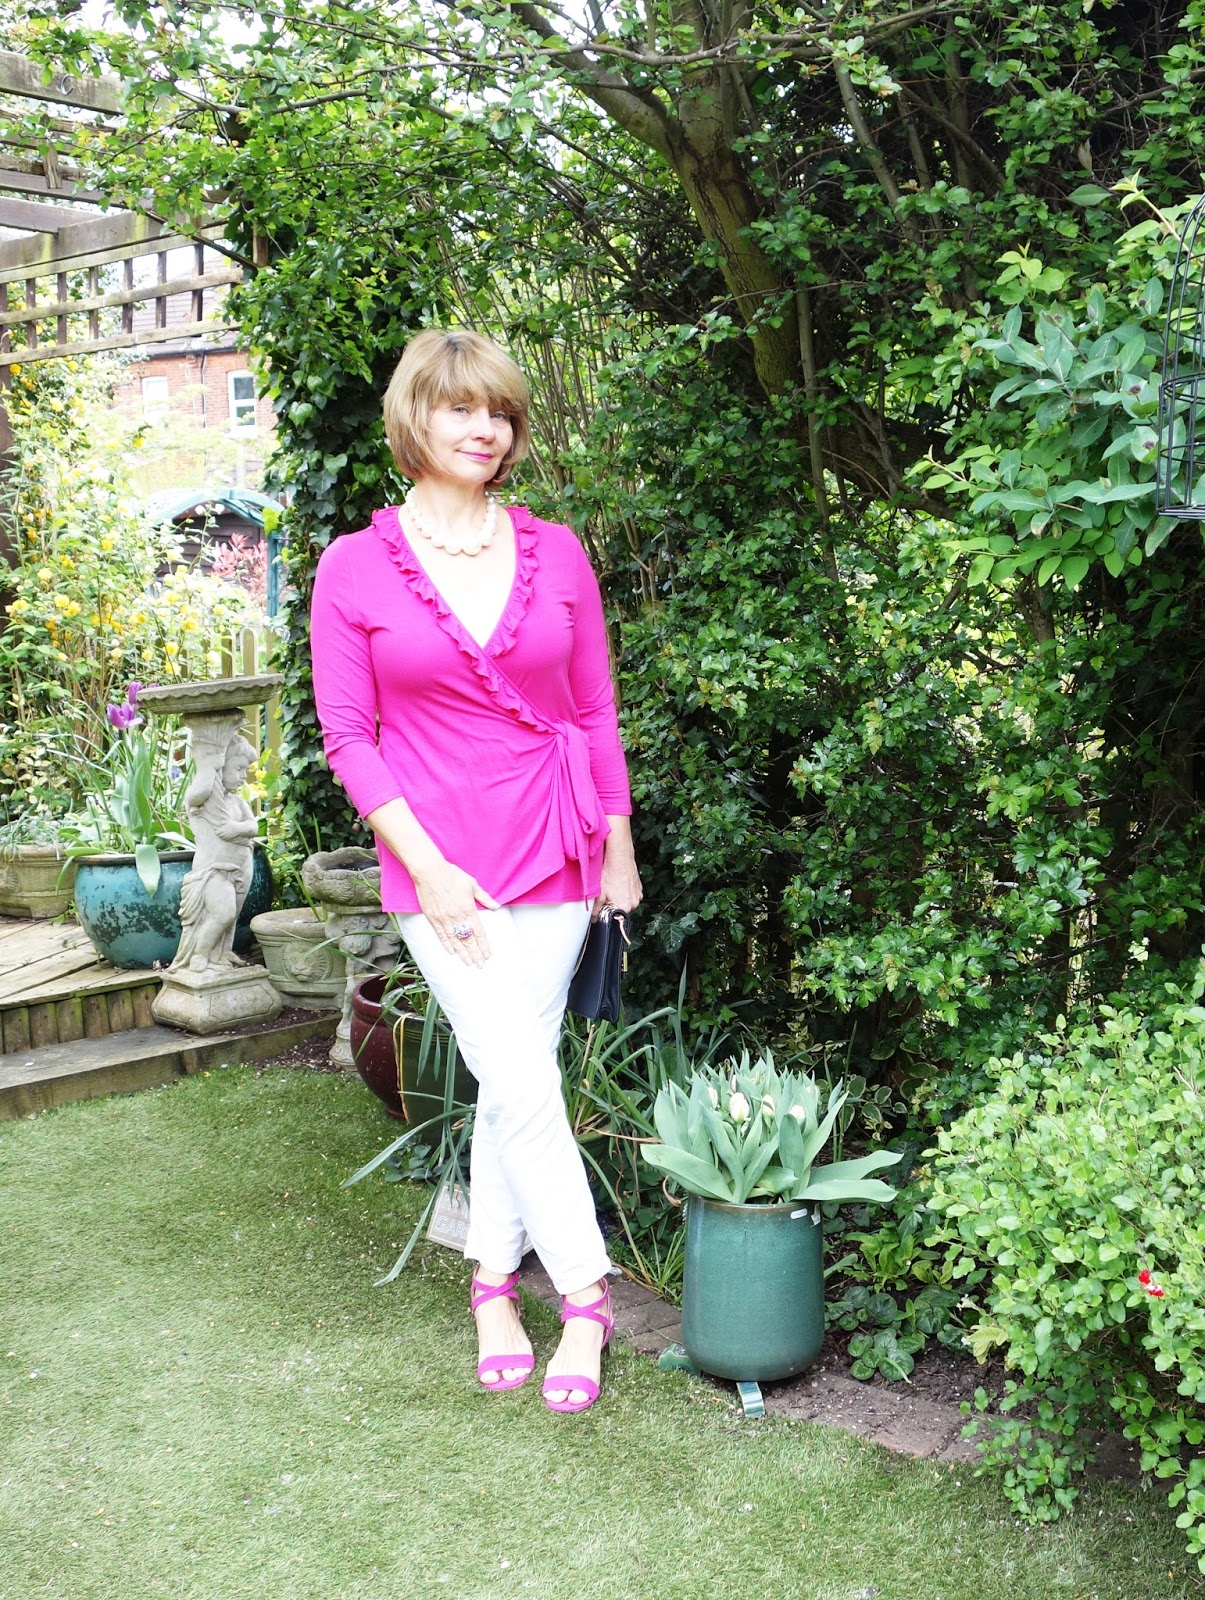 Is This Mutton's Gail Hanlon in pink Kaliko top and pink Topshop sandals